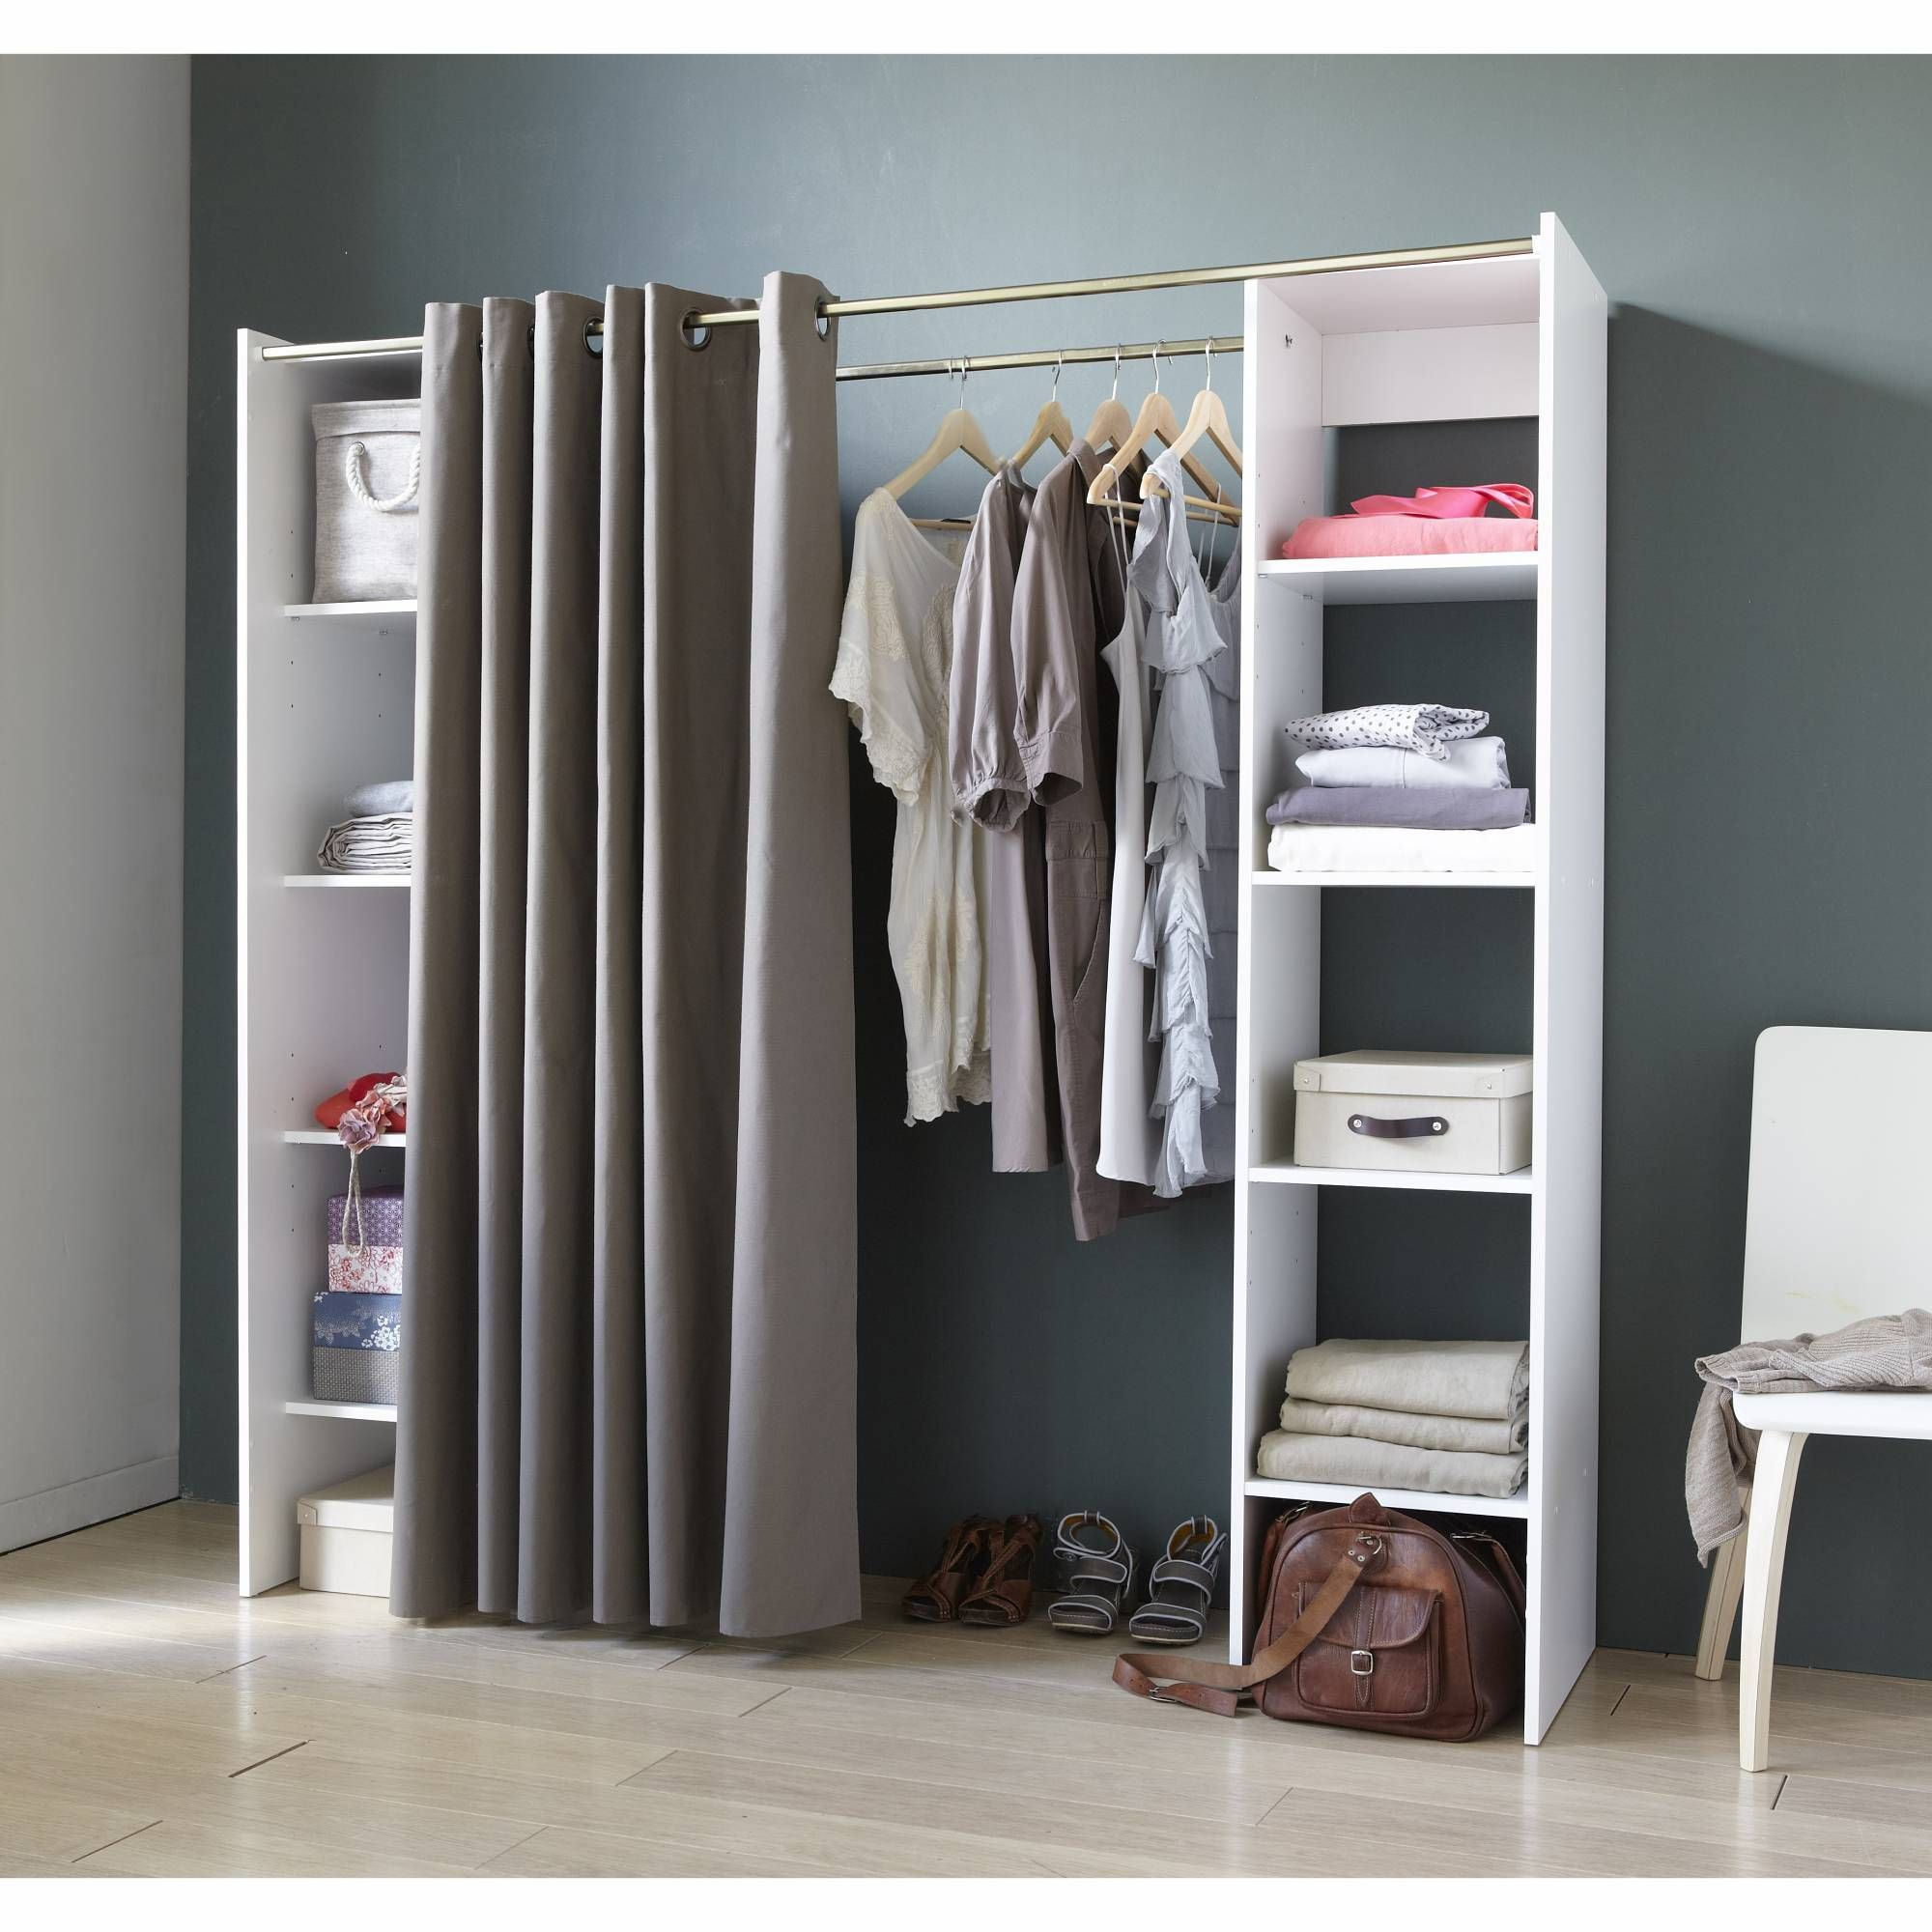 Genial Mock Closet Space For Joeu0027s Or Master Bedrooms